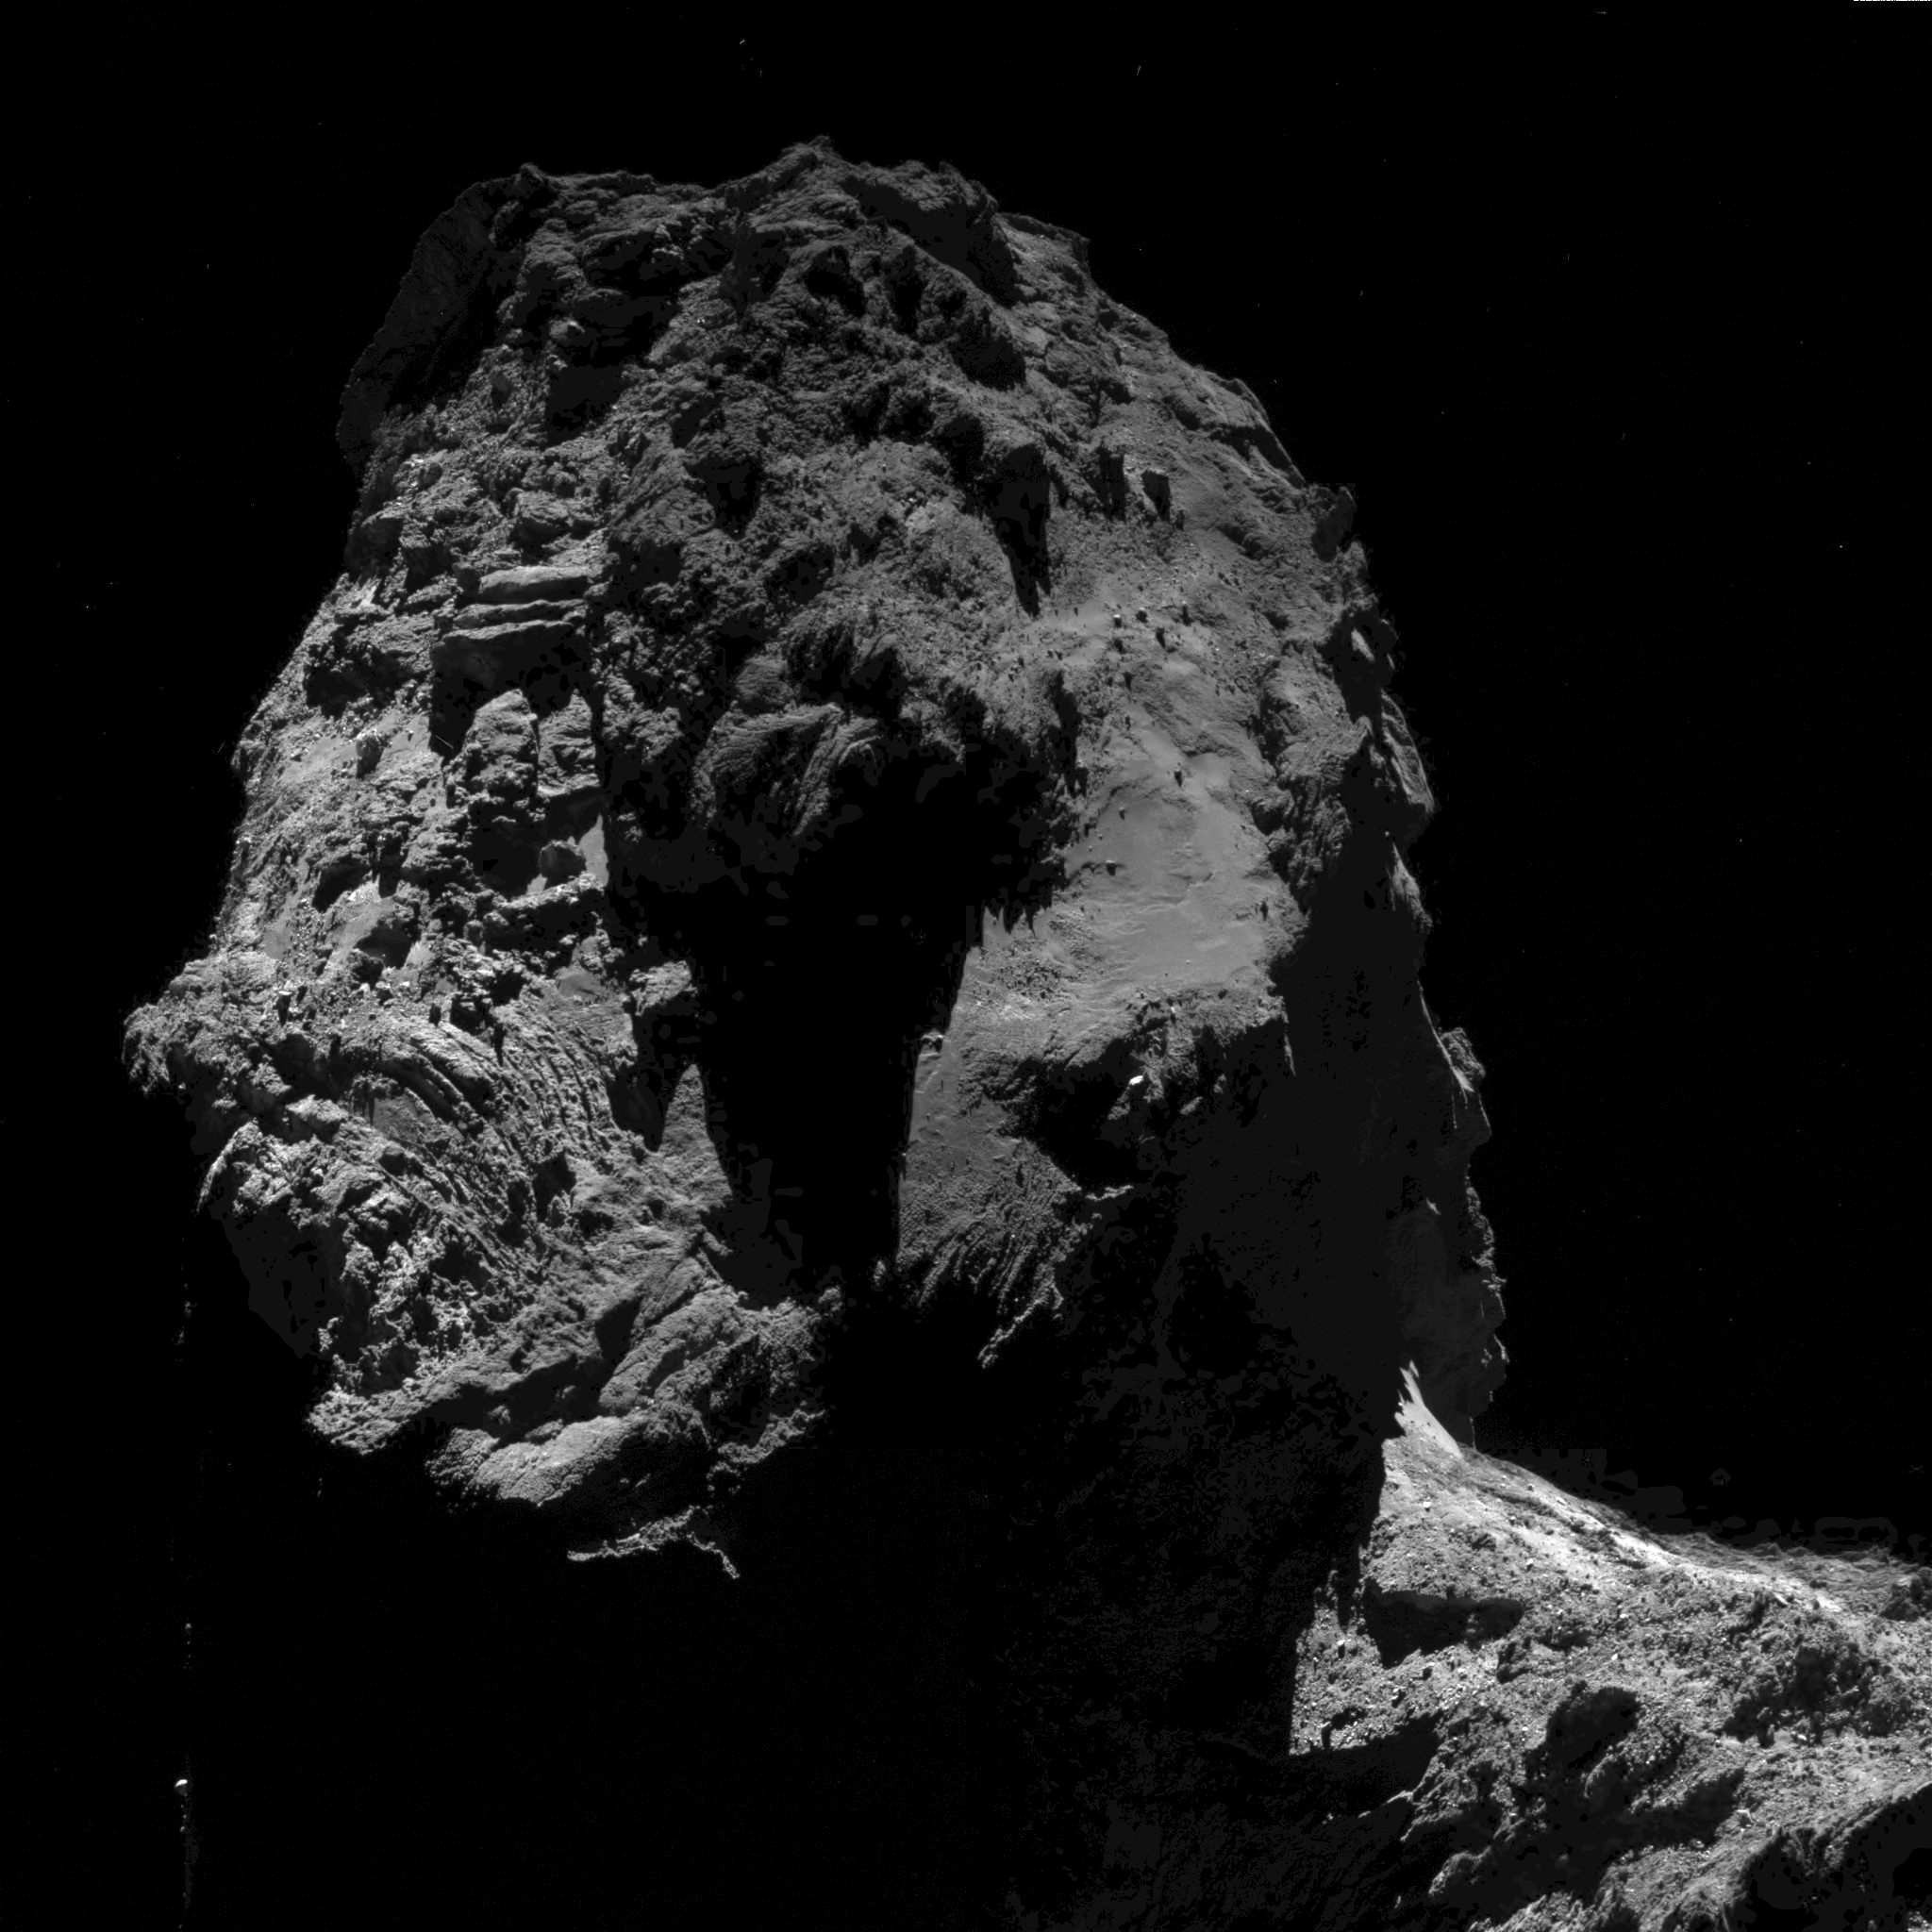 Rosetta - OSIRIS - CG67P - Landing site - plongeon final - Adieux de rosetta - fin de mission - ESA - succes europeen - The end